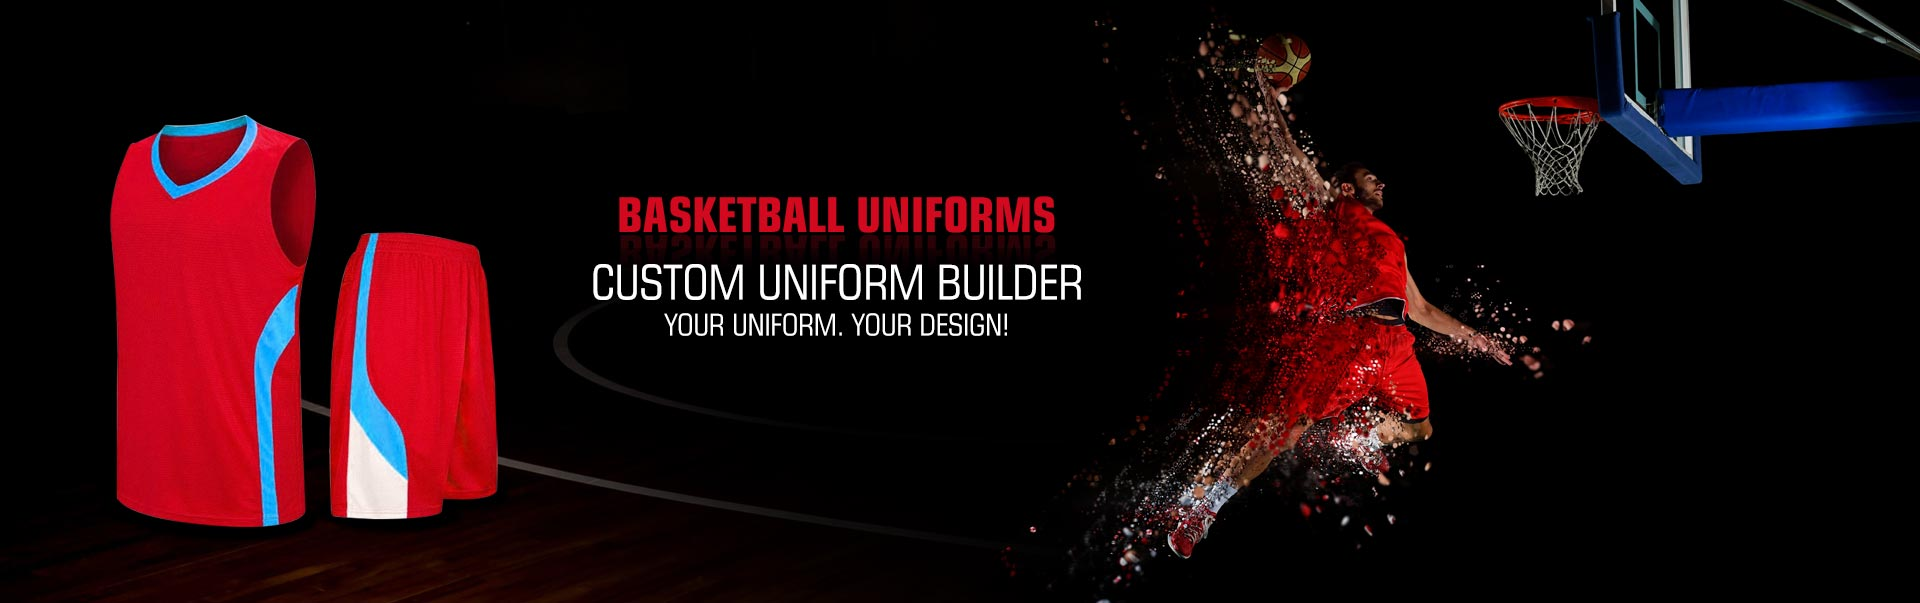 Basketball Uniforms Wholesaler, Suppliers in Krefeld